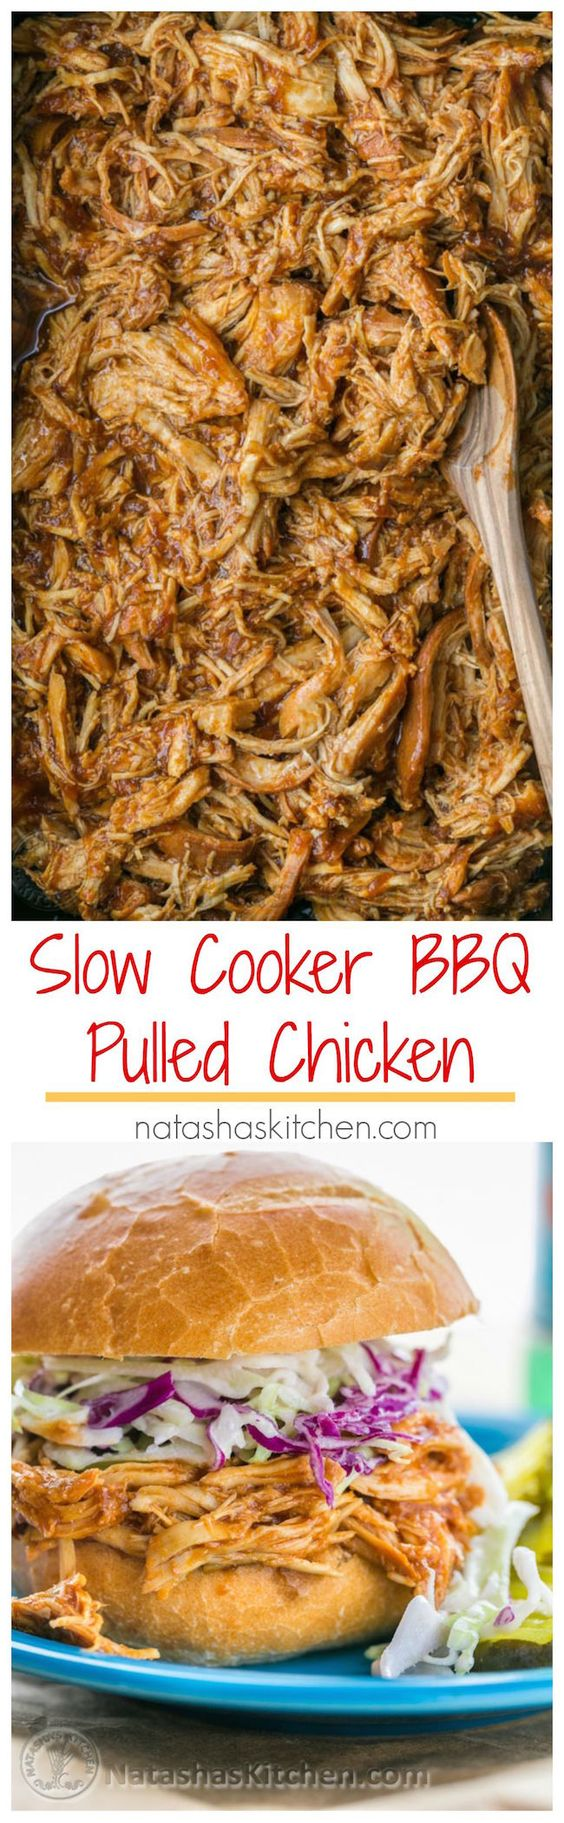 Crockpot Bbq Chicken The Best Slow Cooker Pulled Chicken Fall Apart Tender